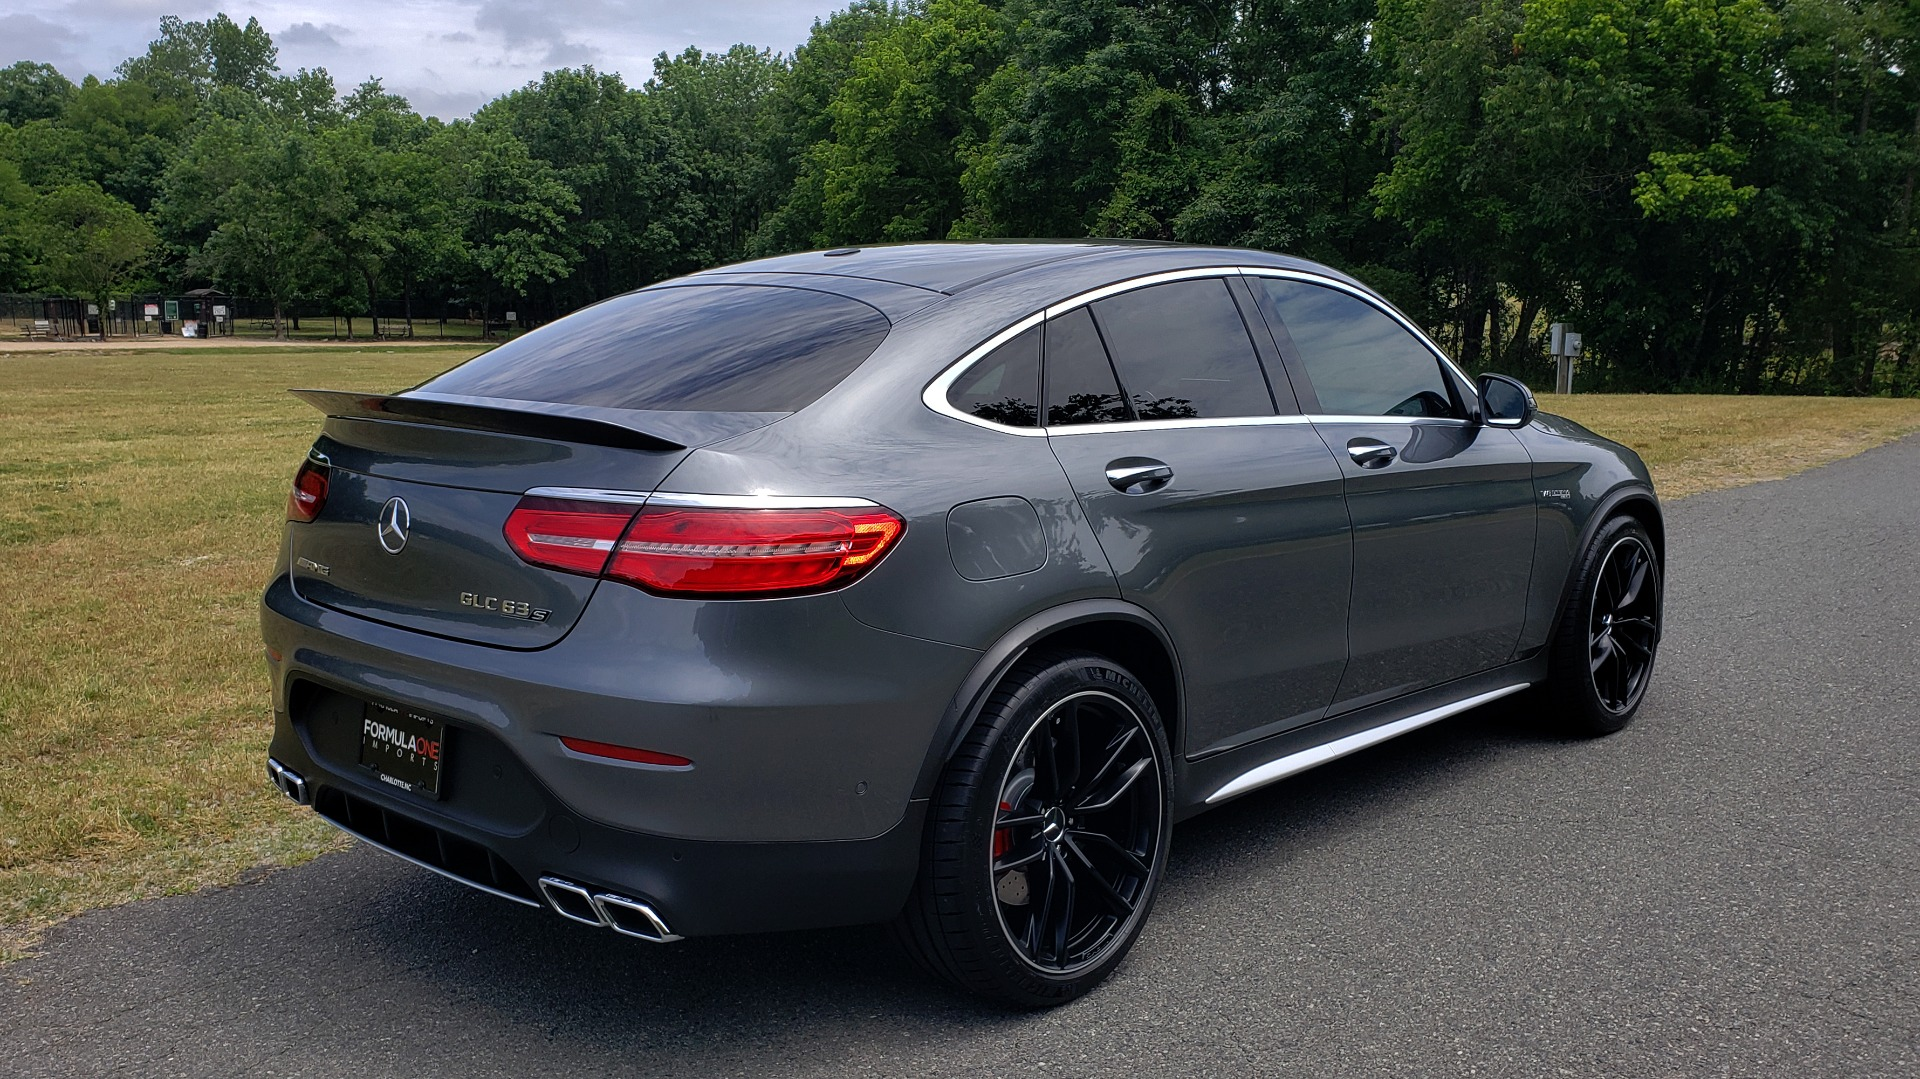 Used 2019 Mercedes-Benz GLC AMG 63 S 4MATIC COUPE / NAV / TRACK PACE APP / AMG PERF EXH / MULTIMEDIA for sale Sold at Formula Imports in Charlotte NC 28227 12